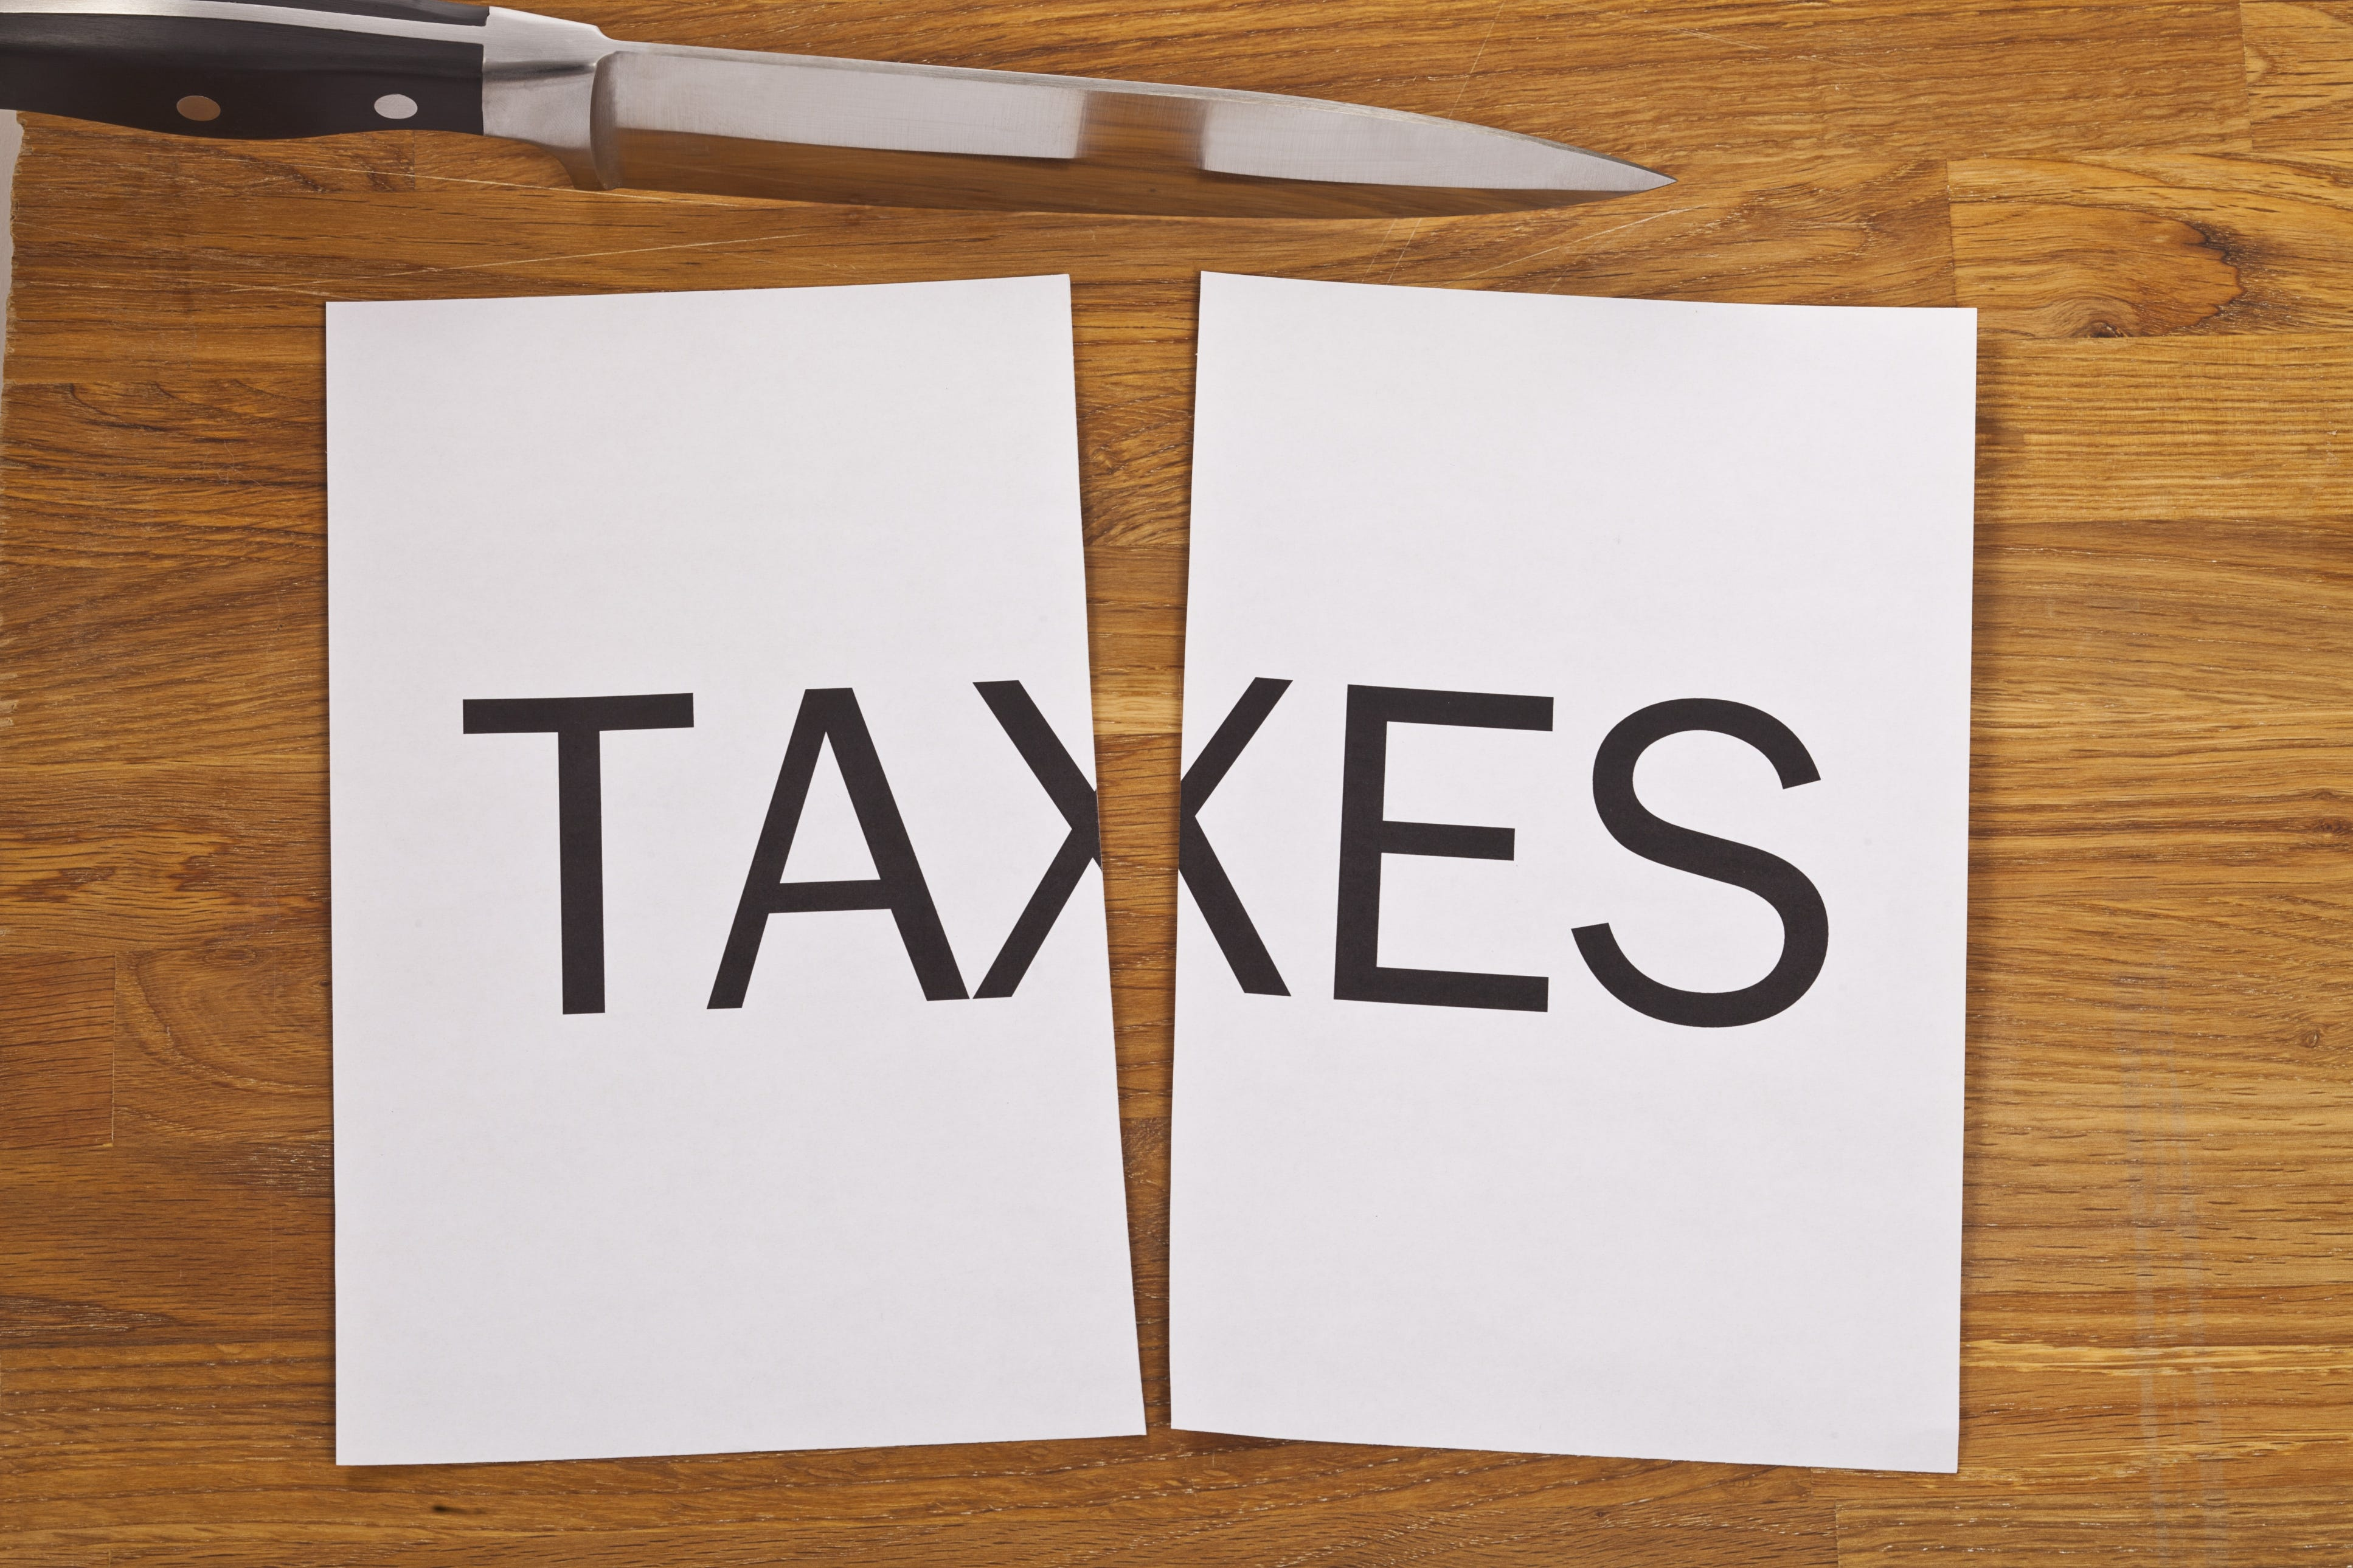 Is itemizing your taxes worth the hassle?